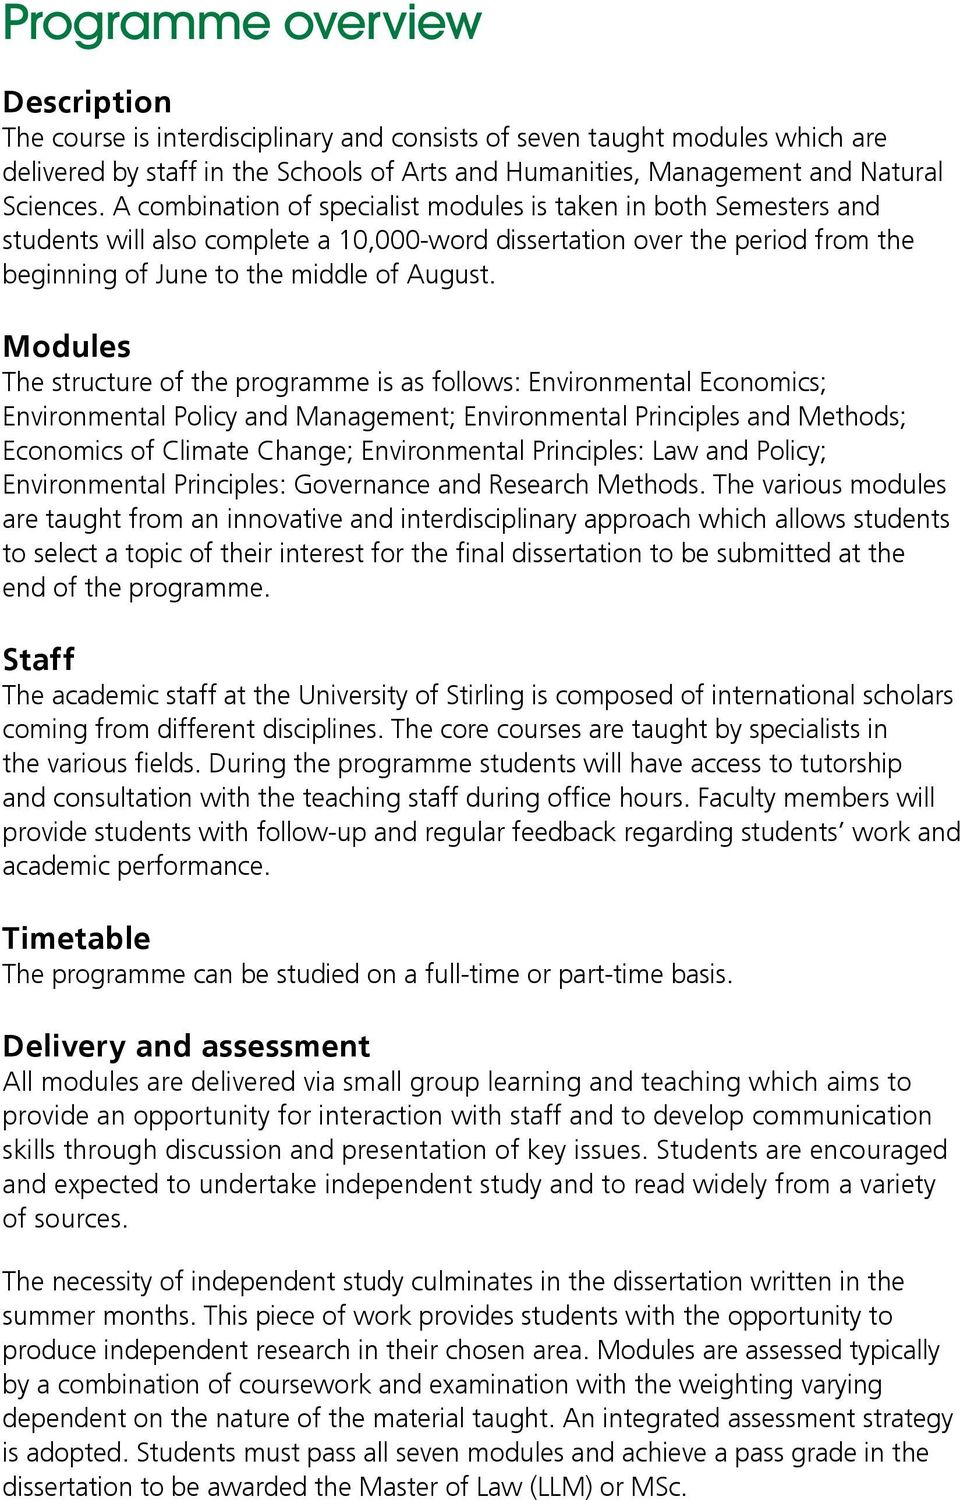 Modules The structure of the programme is as follows: Environmental Economics; Environmental Policy and Management; Environmental Principles and Methods; Economics of Climate Change; Environmental